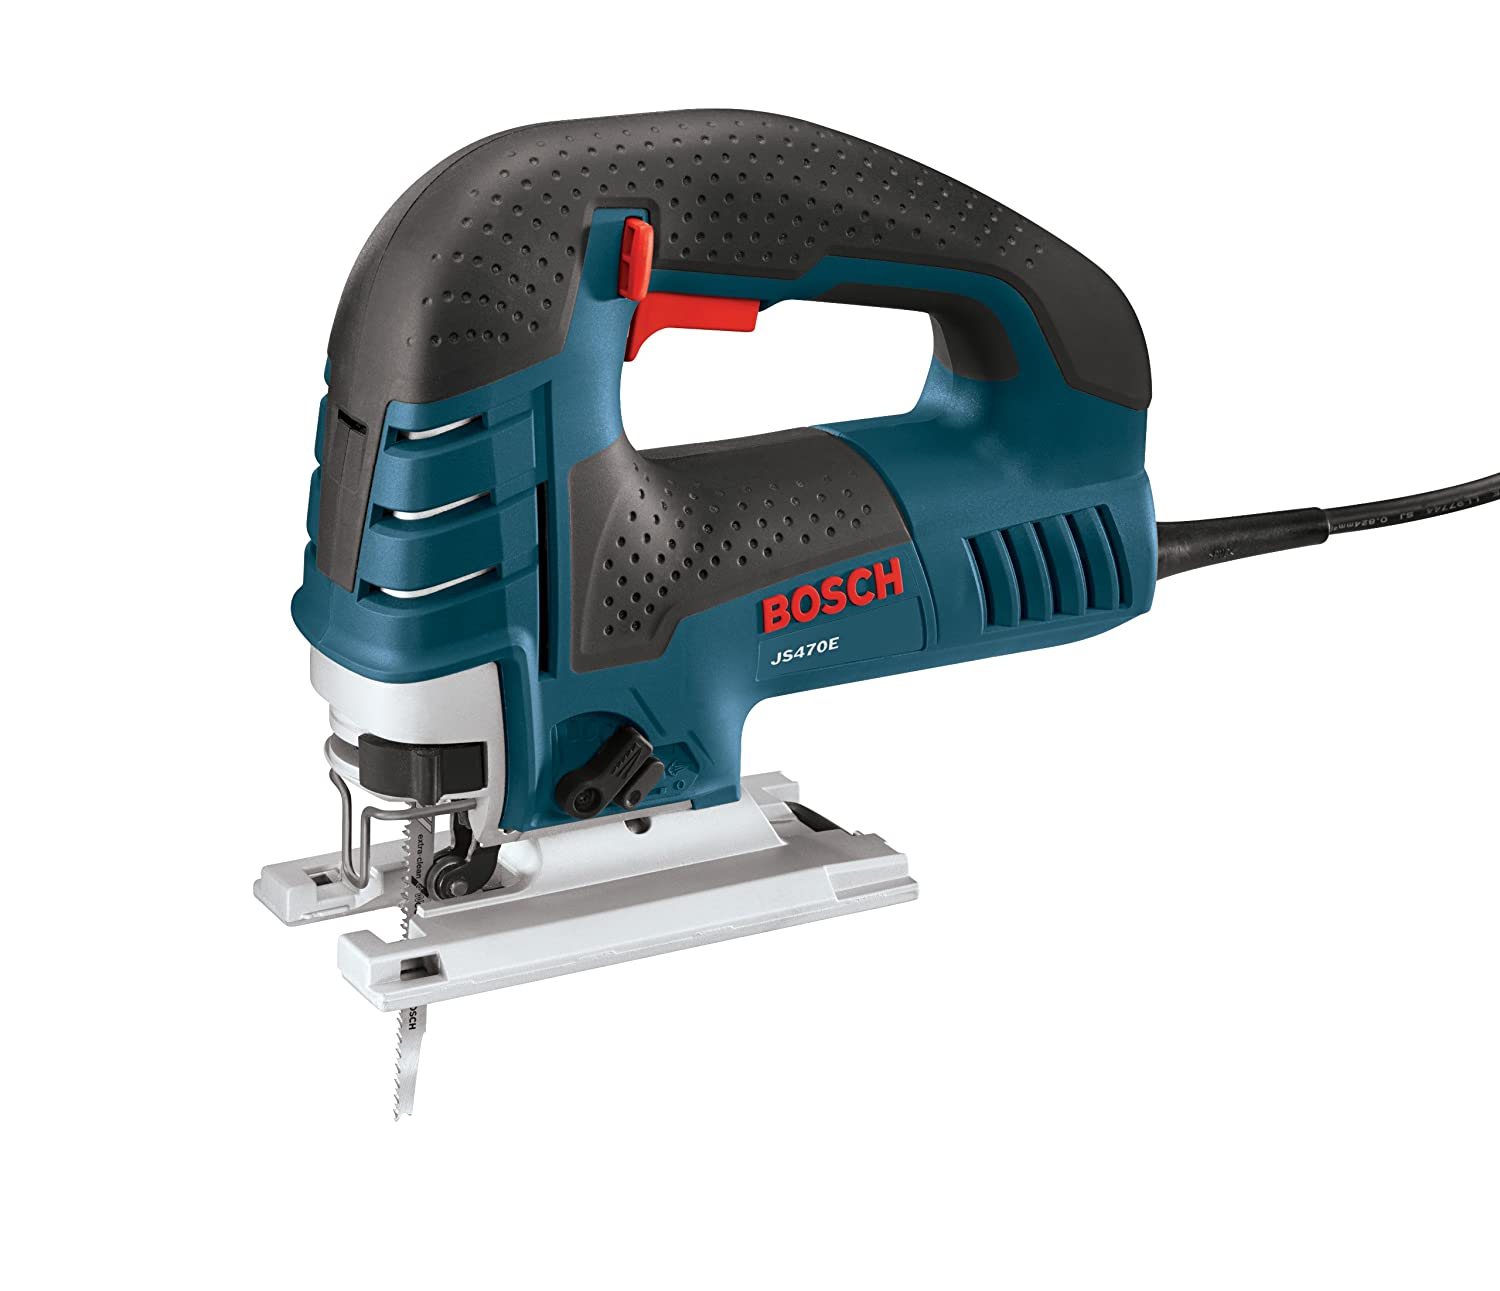 Bosch 120 volt 70 amp variable speed top handle jigsaw js470e bosch 120 volt 70 amp variable speed top handle jigsaw js470e power jig saws amazon keyboard keysfo